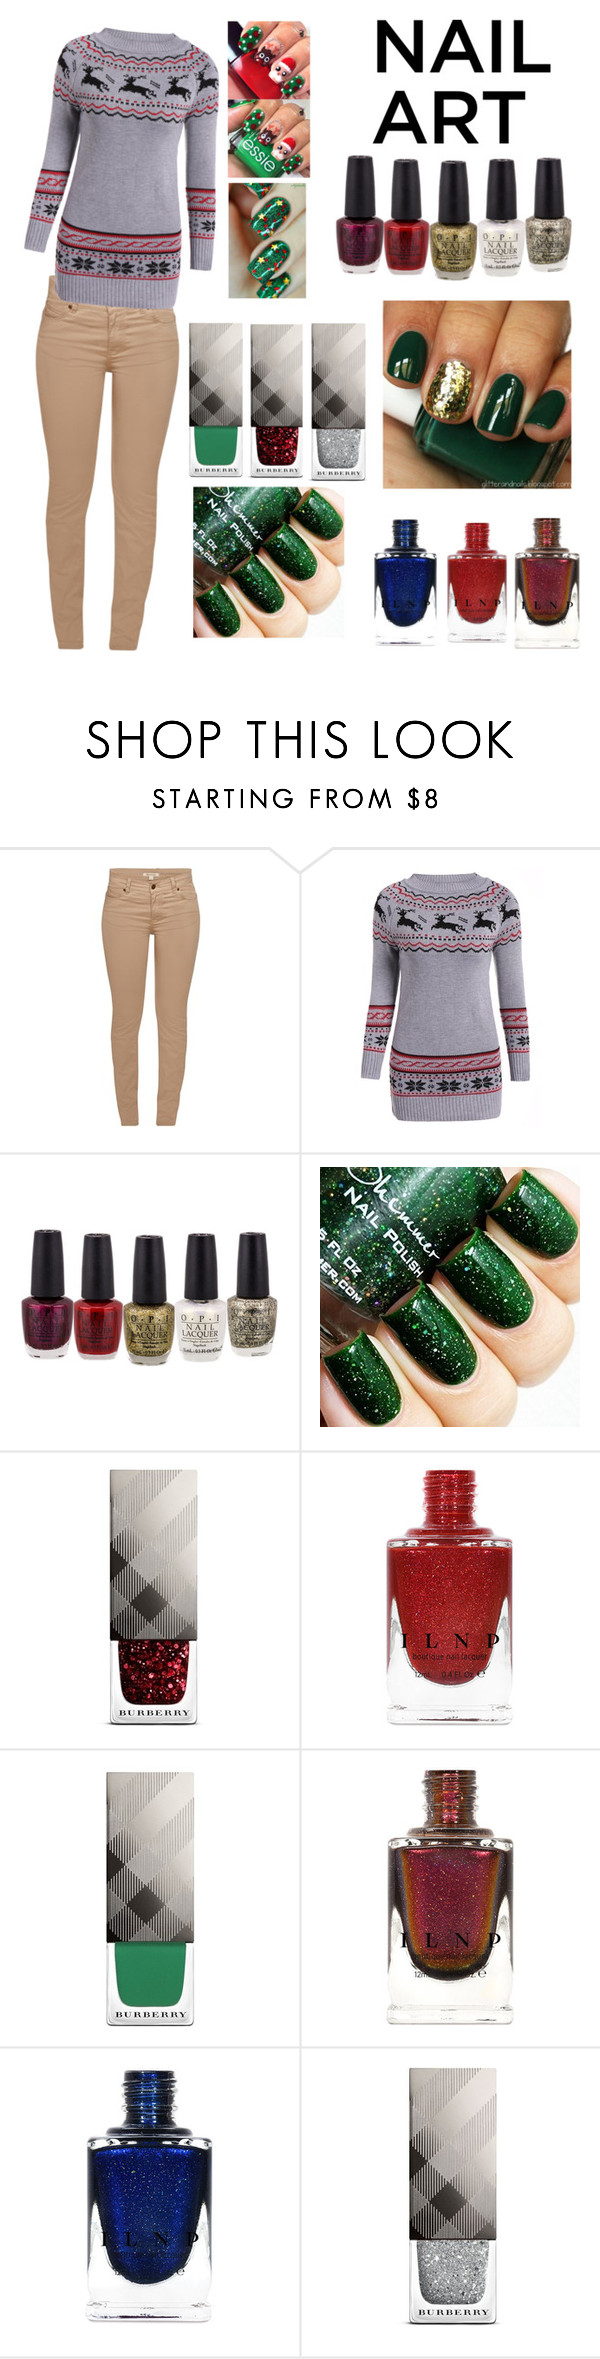 """NAIL ART!!"" by wilma-hjorklund ❤ liked on Polyvore featuring beauty, Barbour and Burberry"